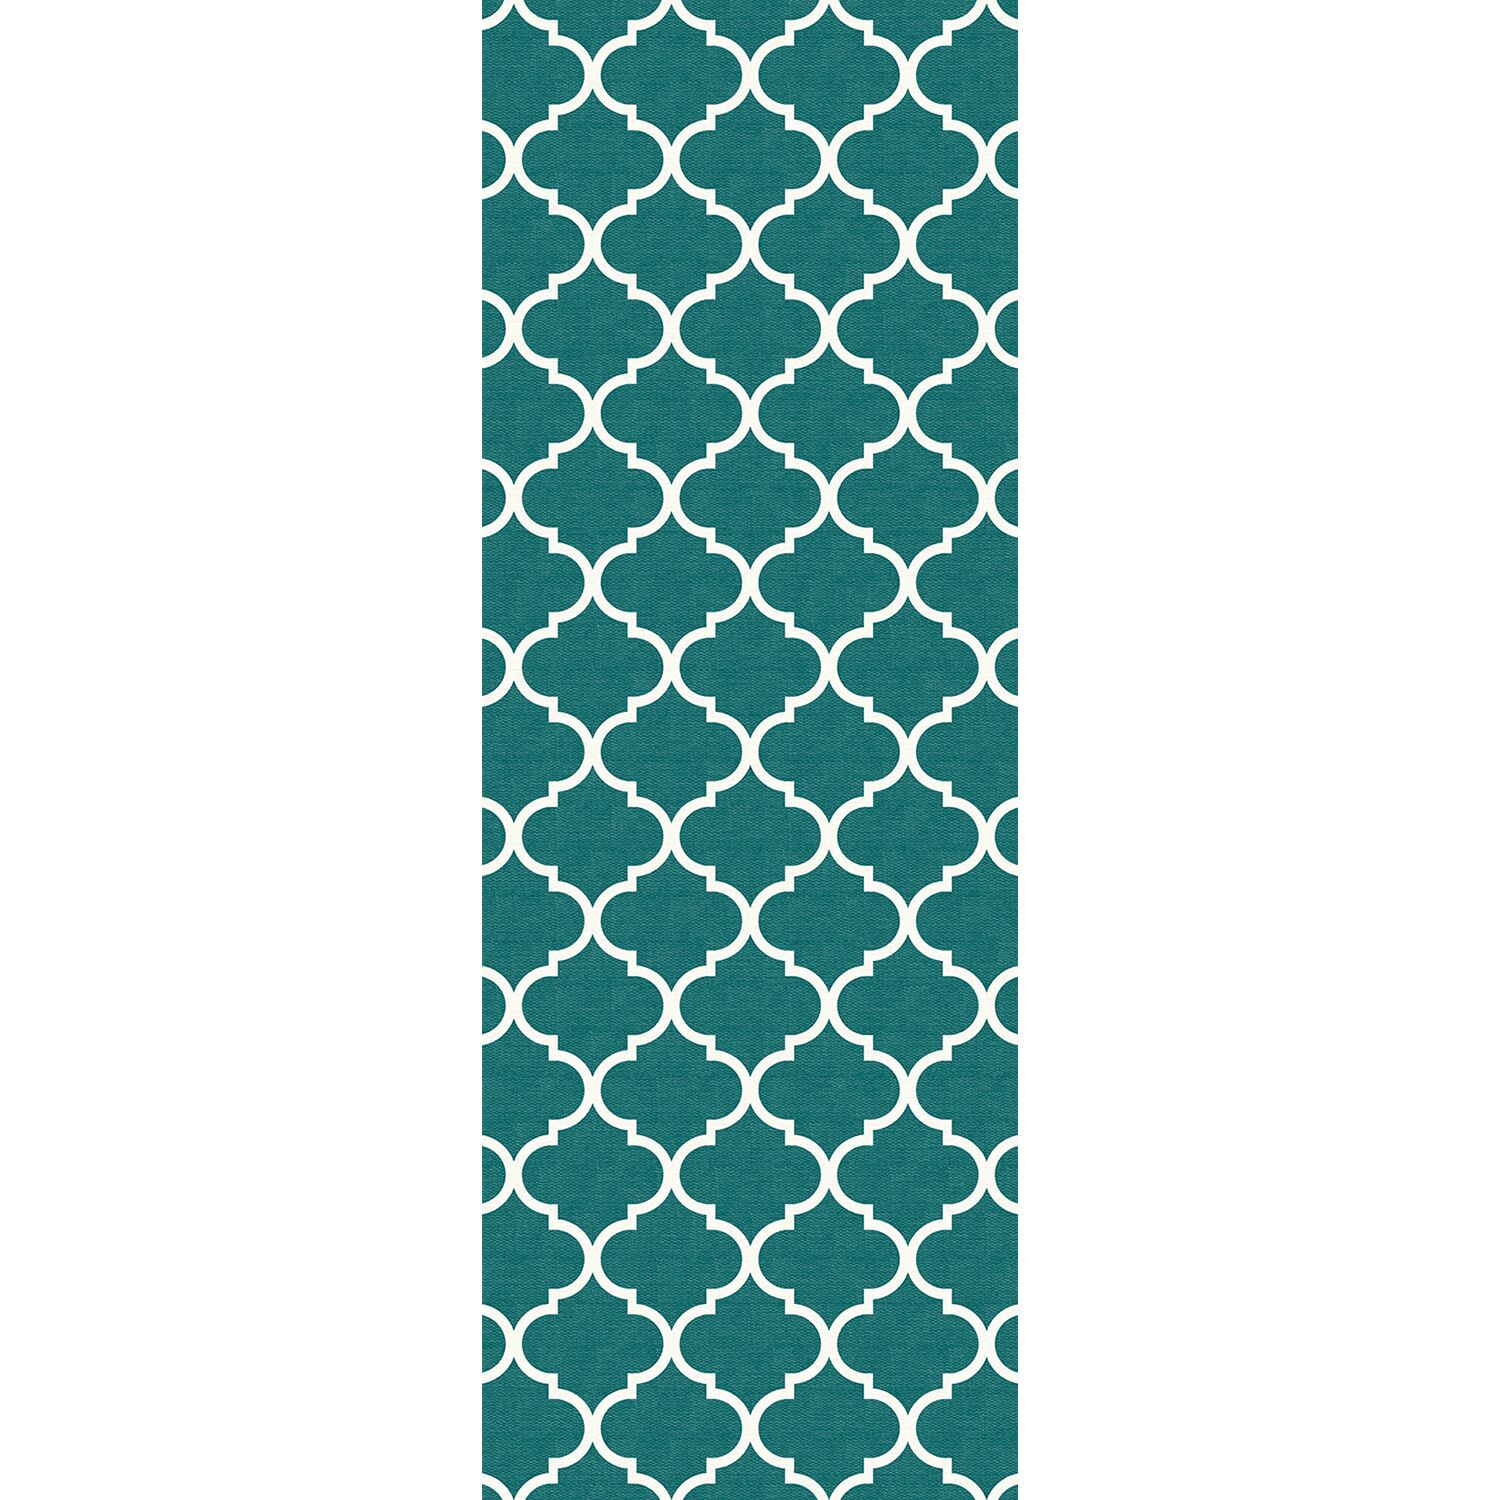 Teal Indoor/Outdoor Accent Rug Rug Size: Runner 2'6